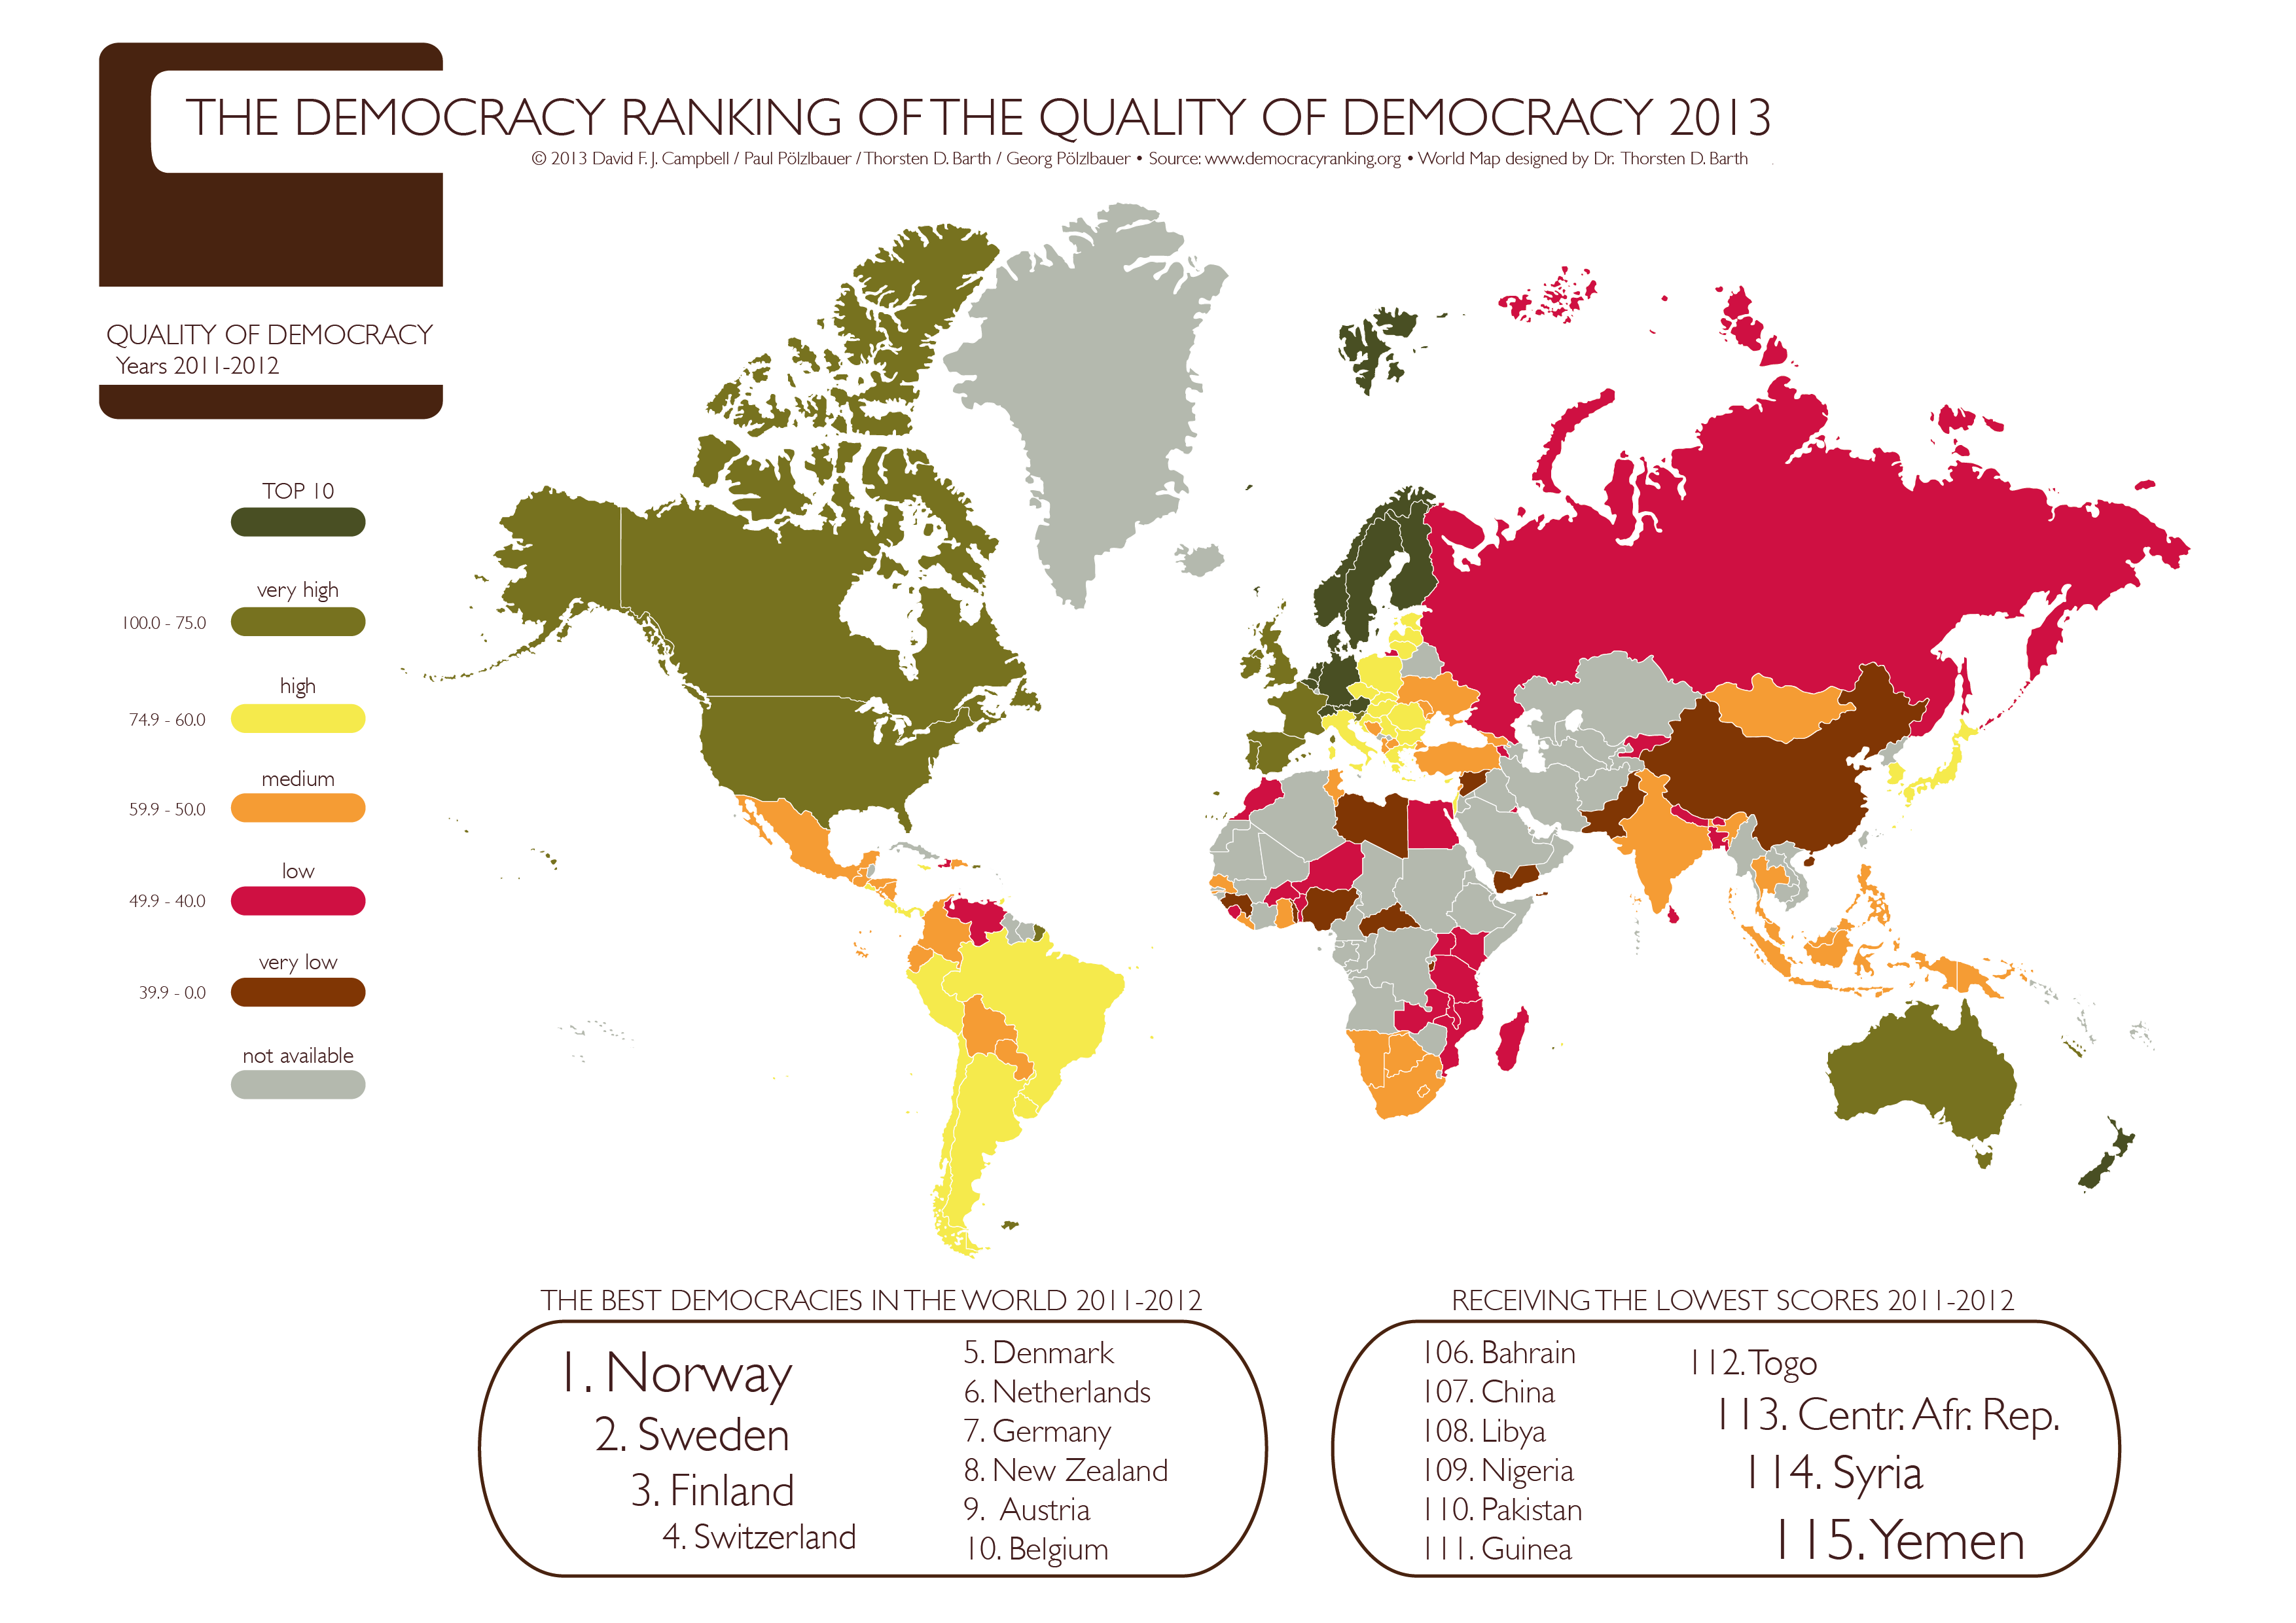 Austria norway on world map netherlands on world map belgium map filedemocracy ranking of the quality of democracy 2013 world map on netherlands on gumiabroncs